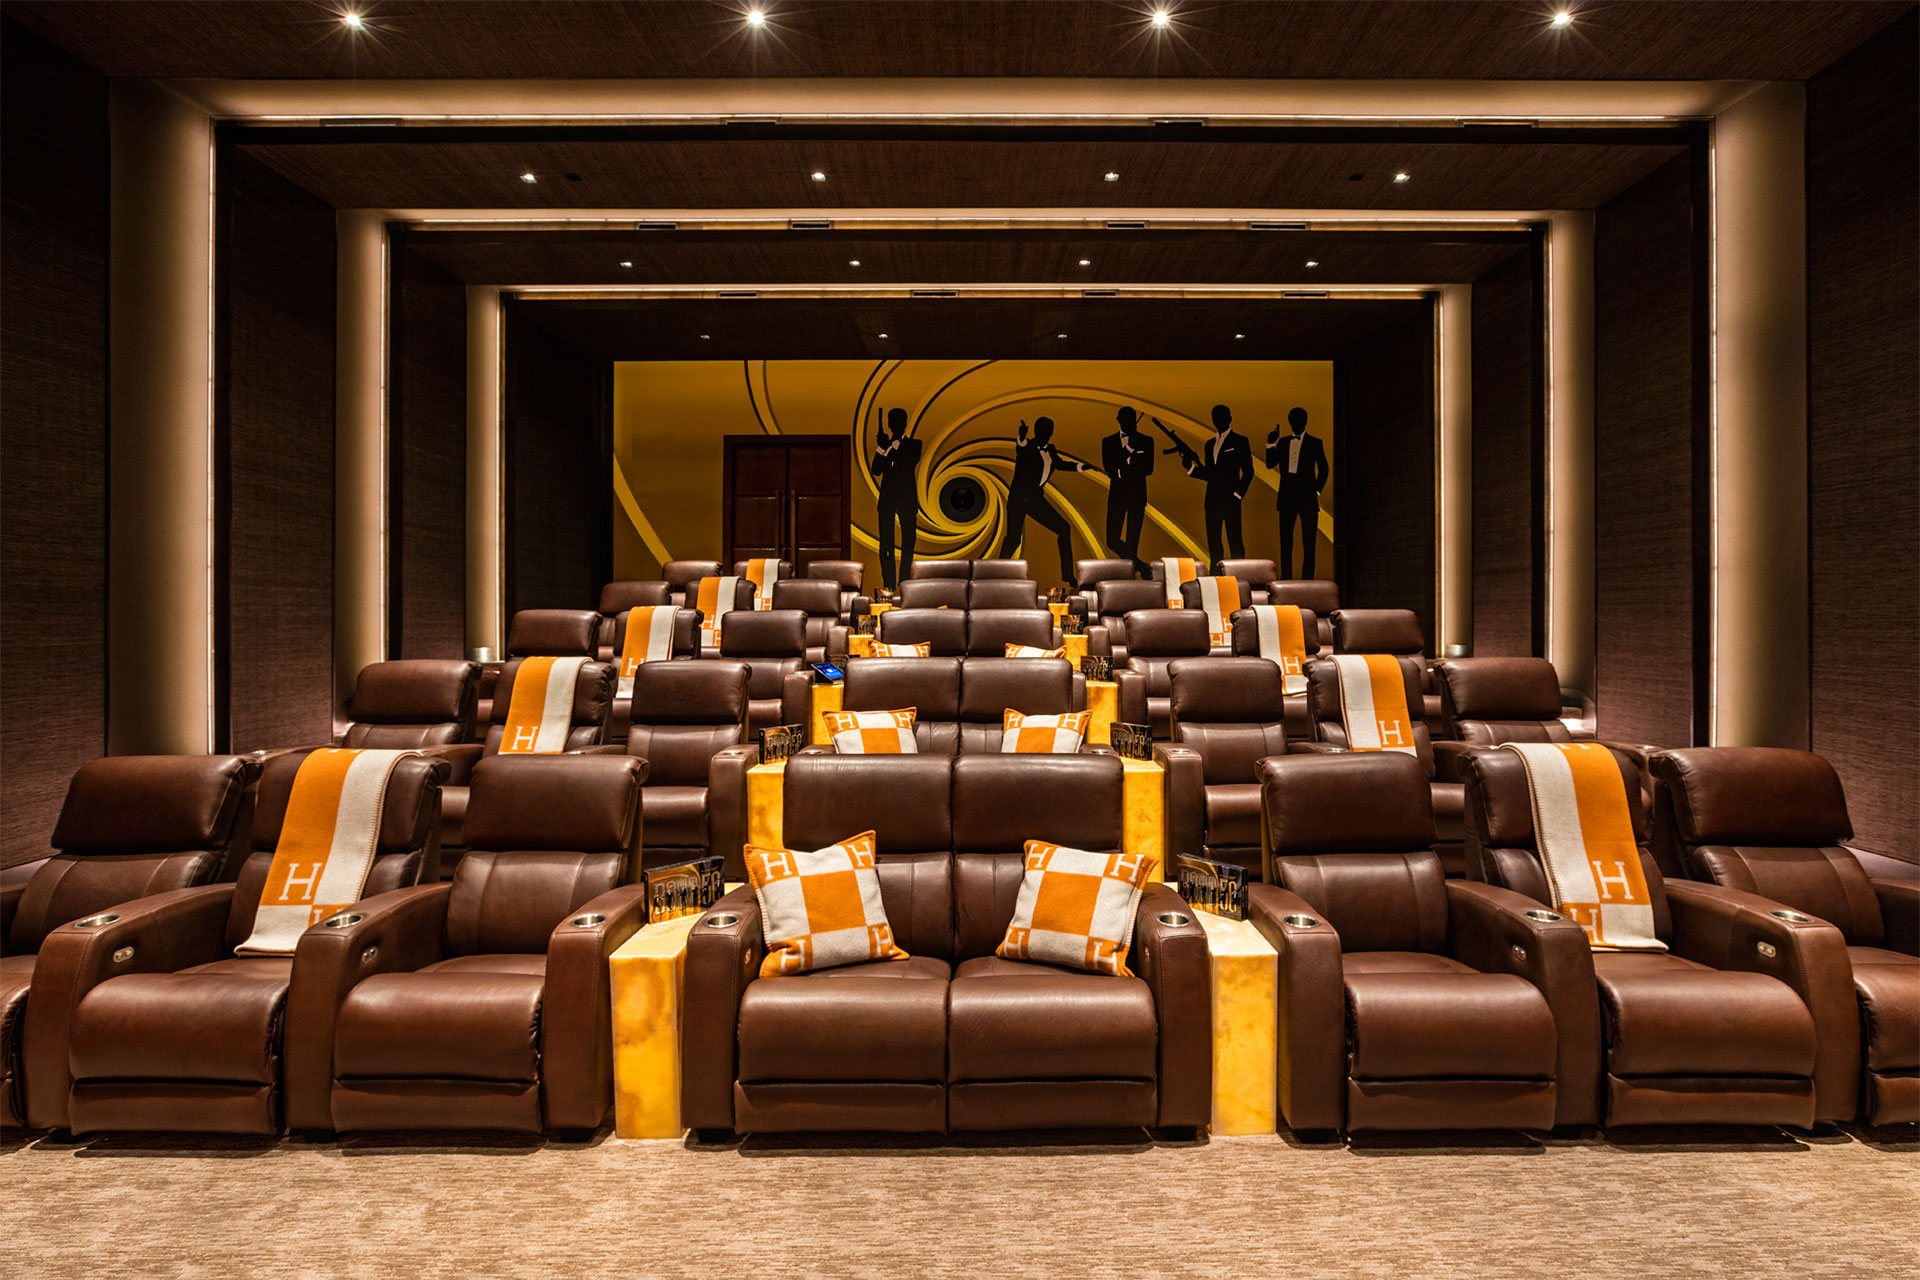 La sala de cine, con detalles exclusivos y una referencia a James Bond (BAM Luxury Development)